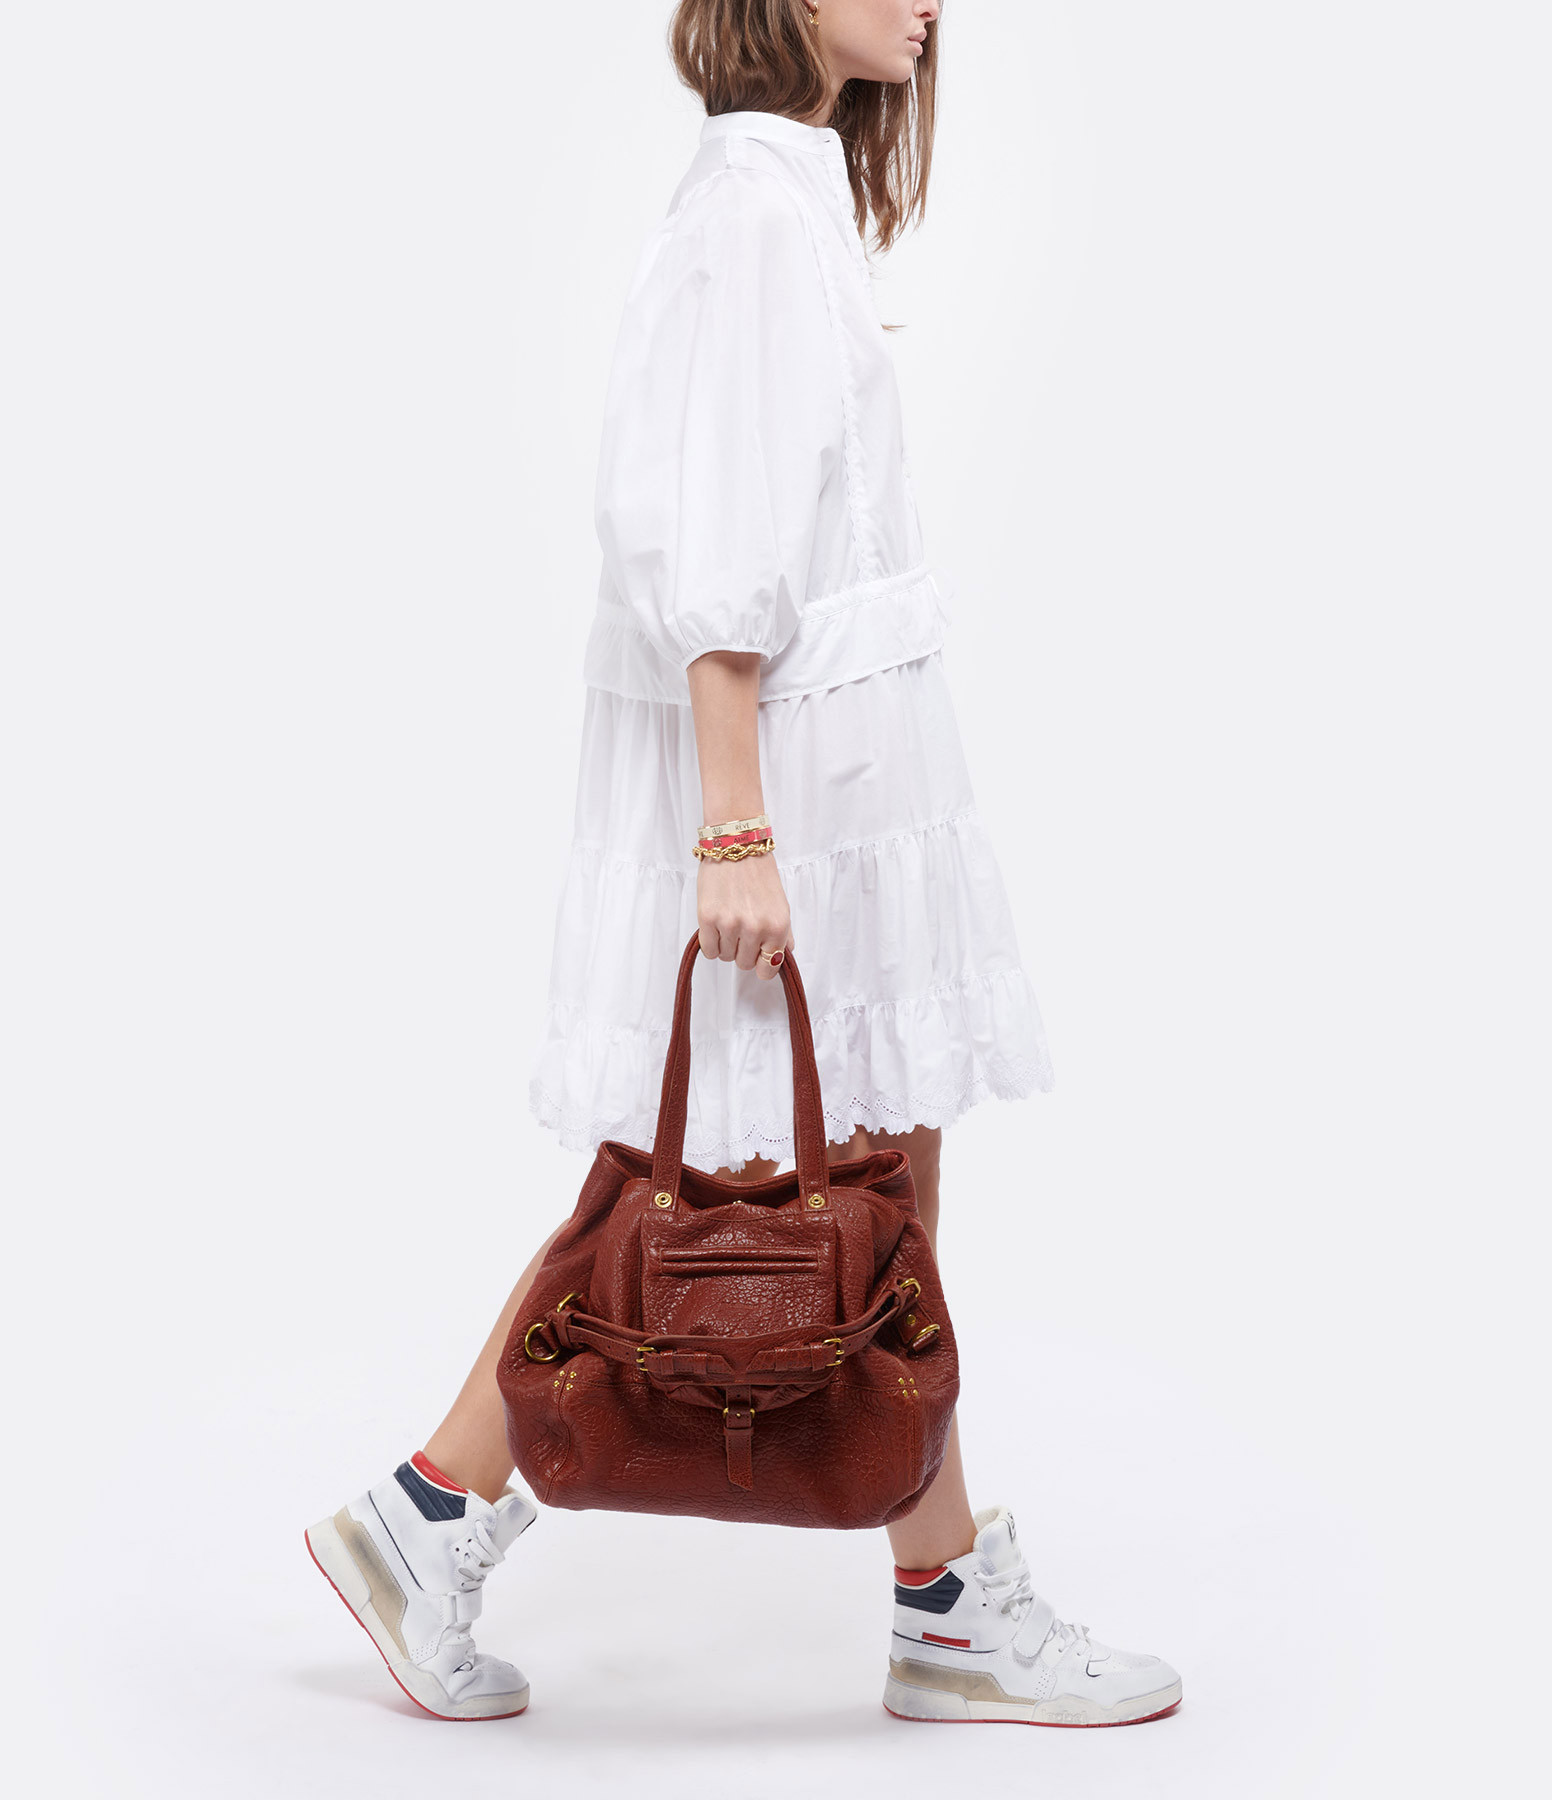 JEROME DREYFUSS - Sac Billy M Agneau Old Red